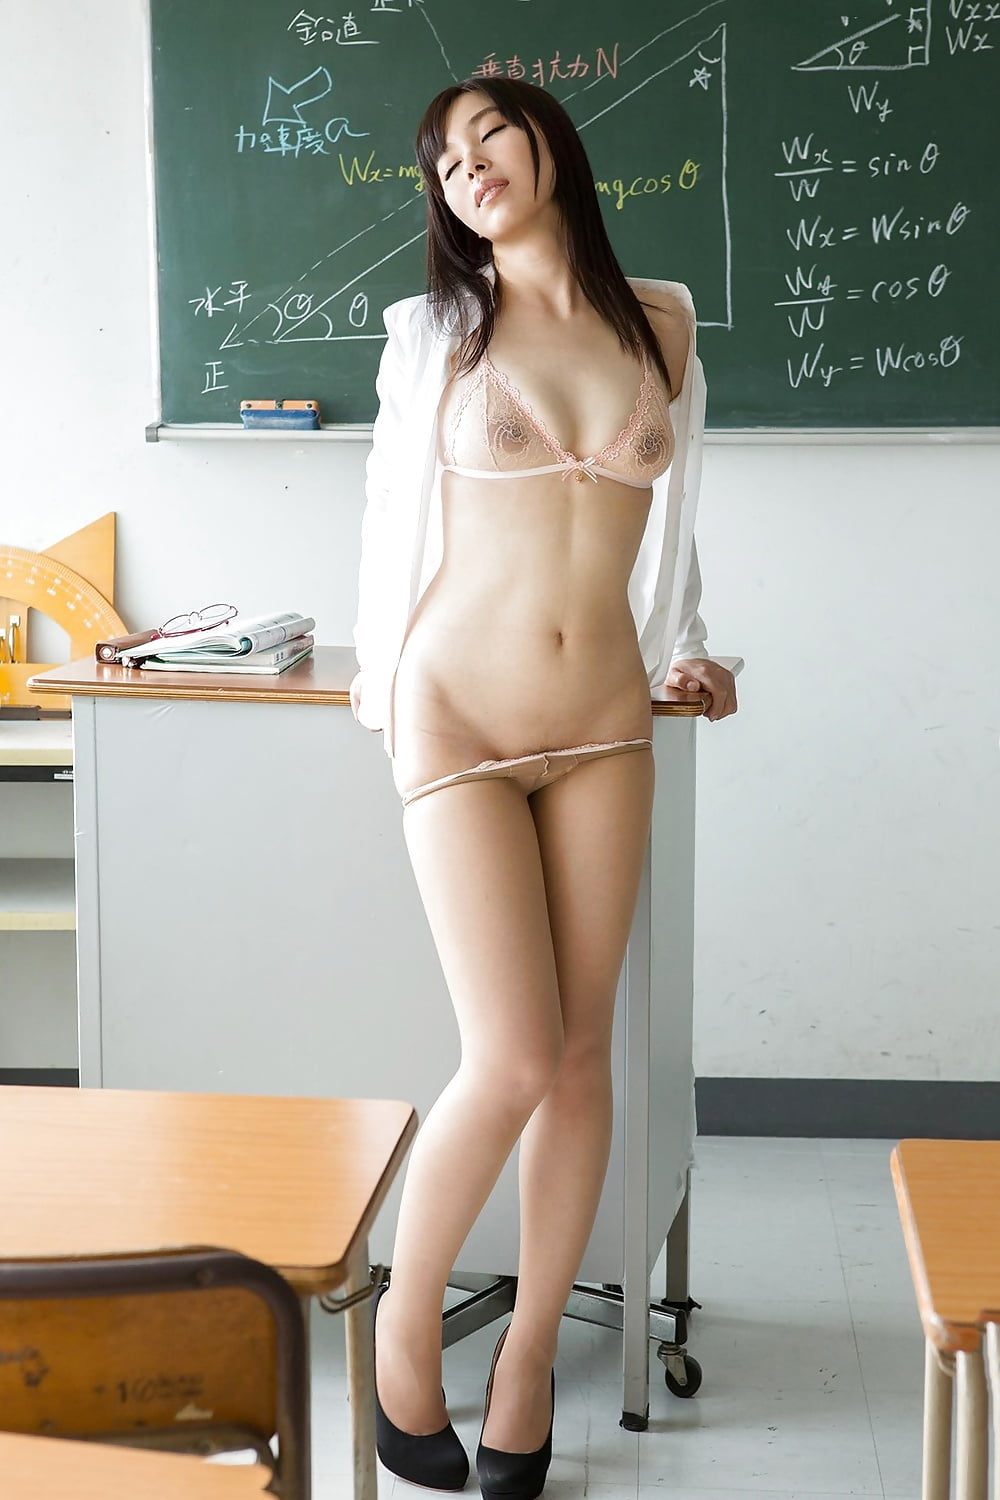 Nude teacher asia